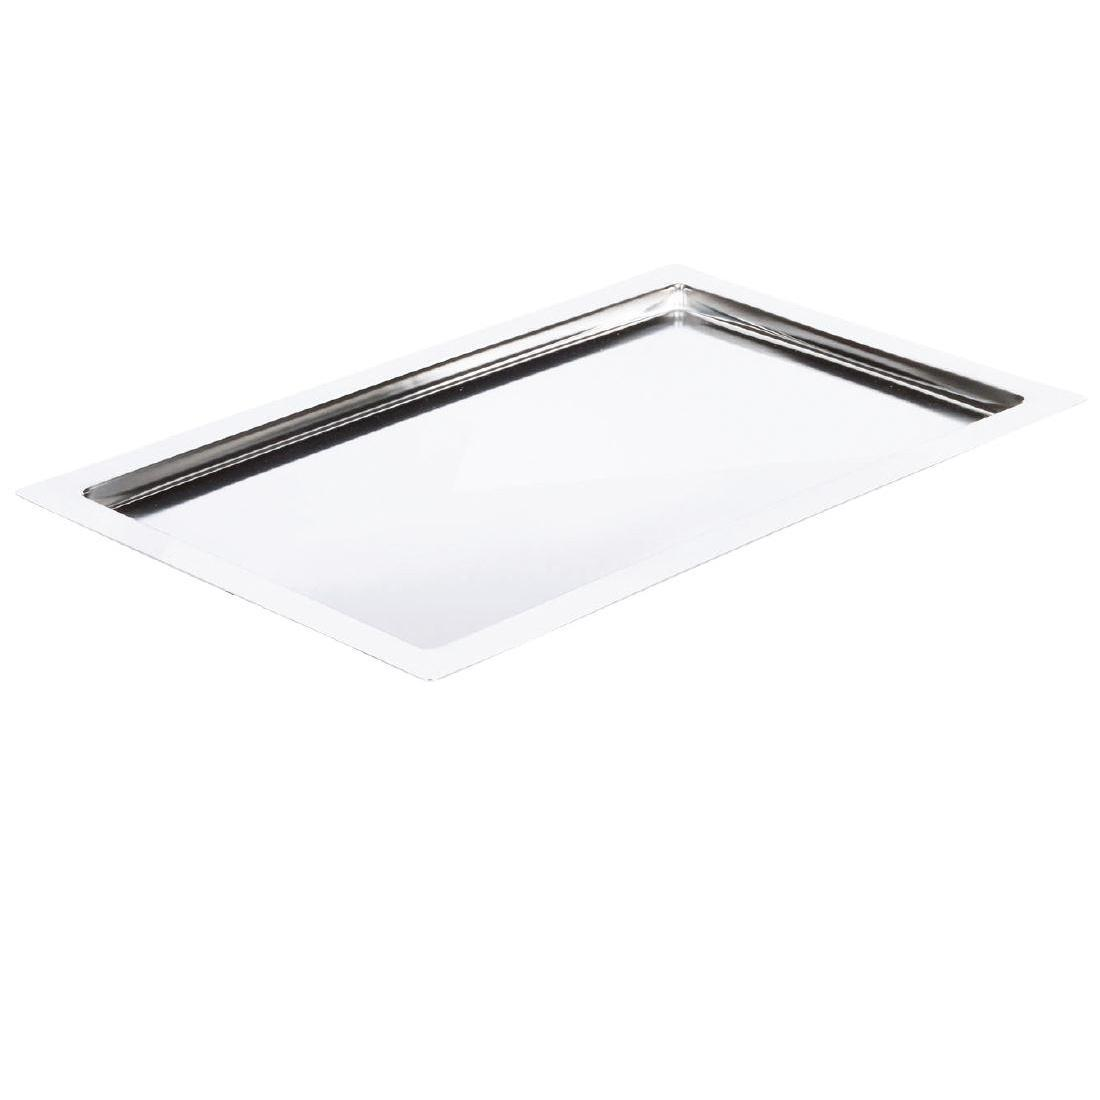 APS Frames Stainless Steel Platter GN 1/1 - Each - GC904